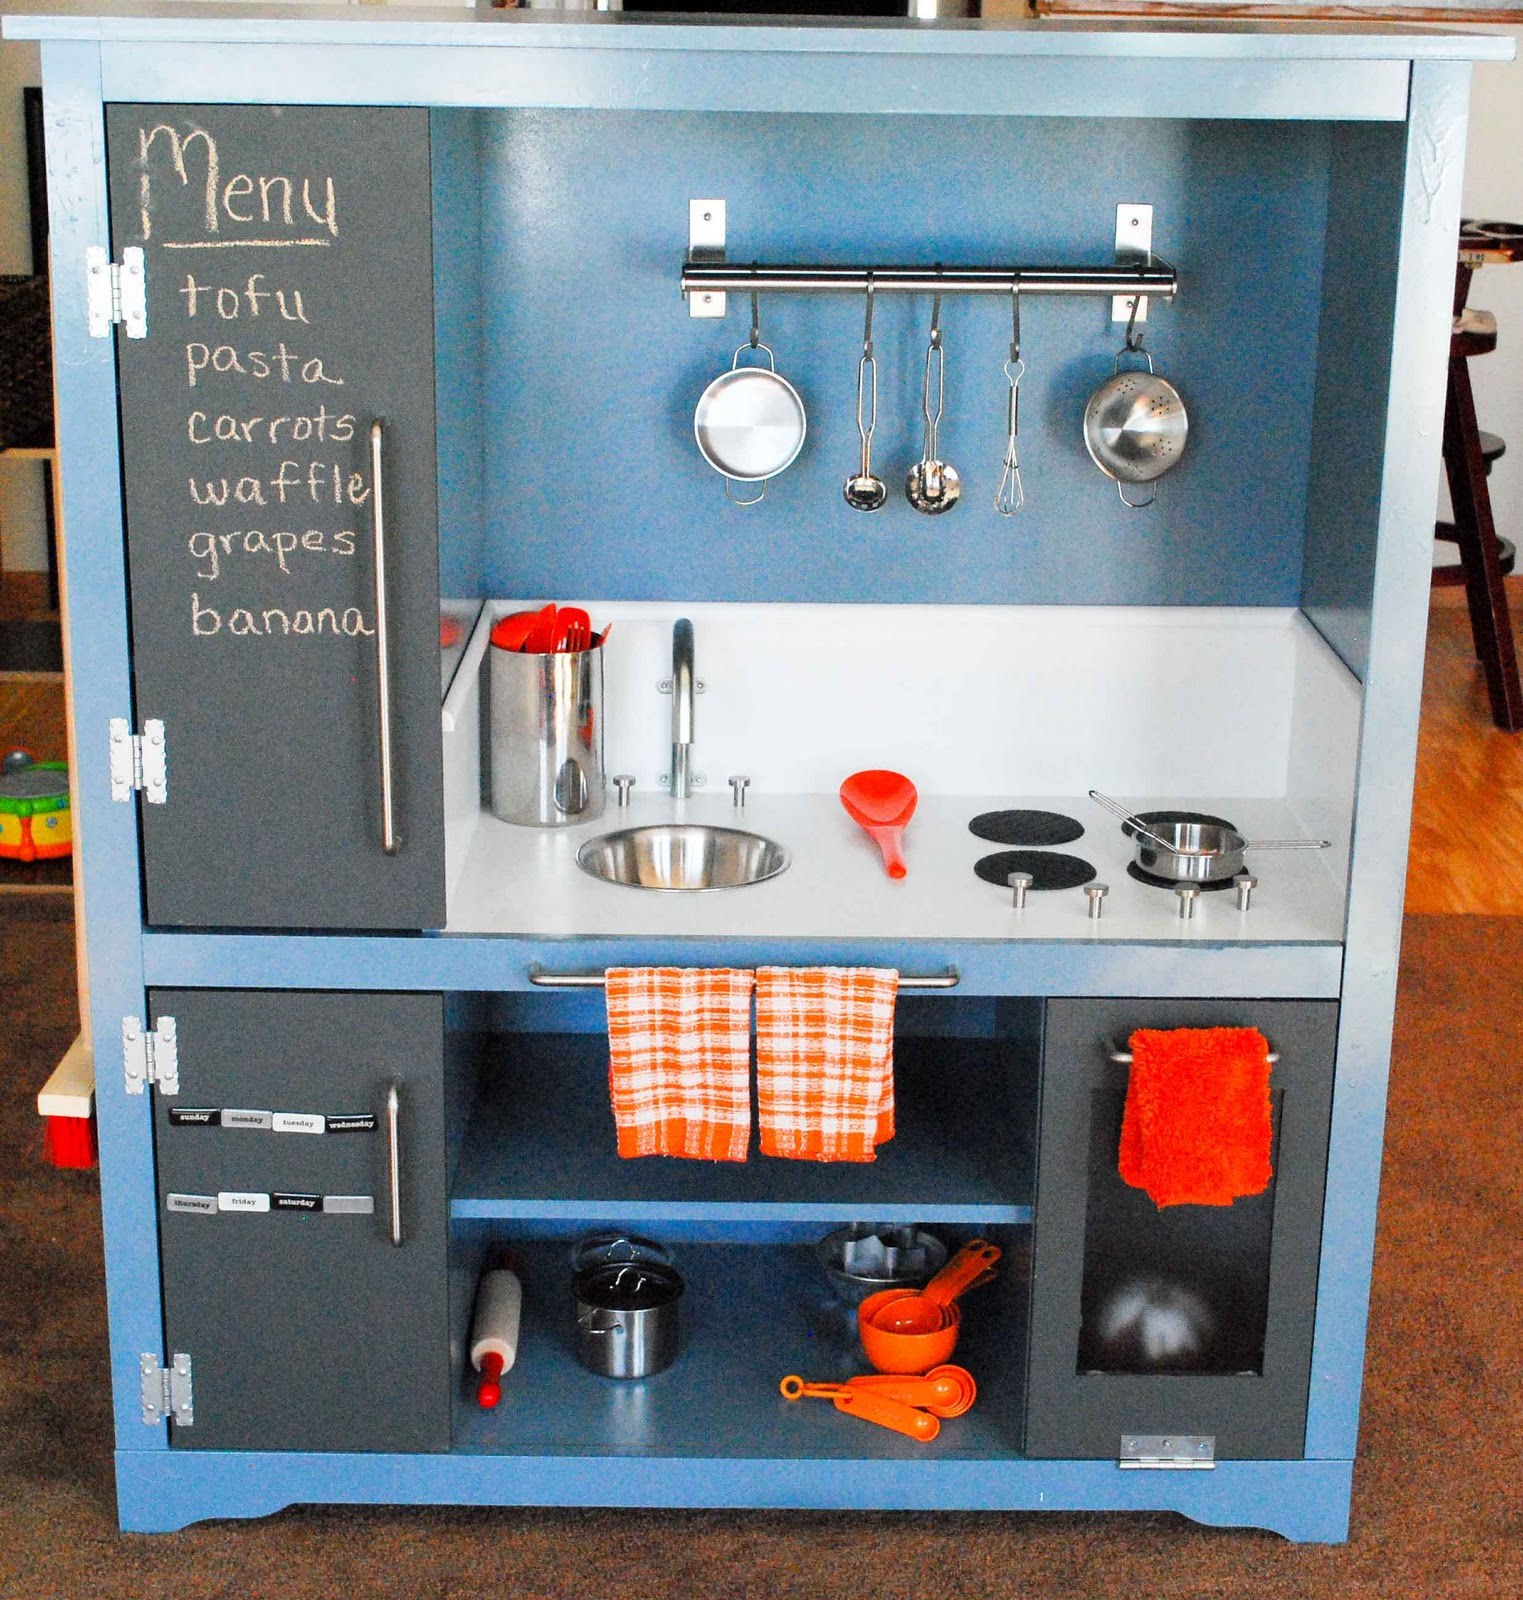 Regifter's Bible: Entertainment Center turned Play Kitchen